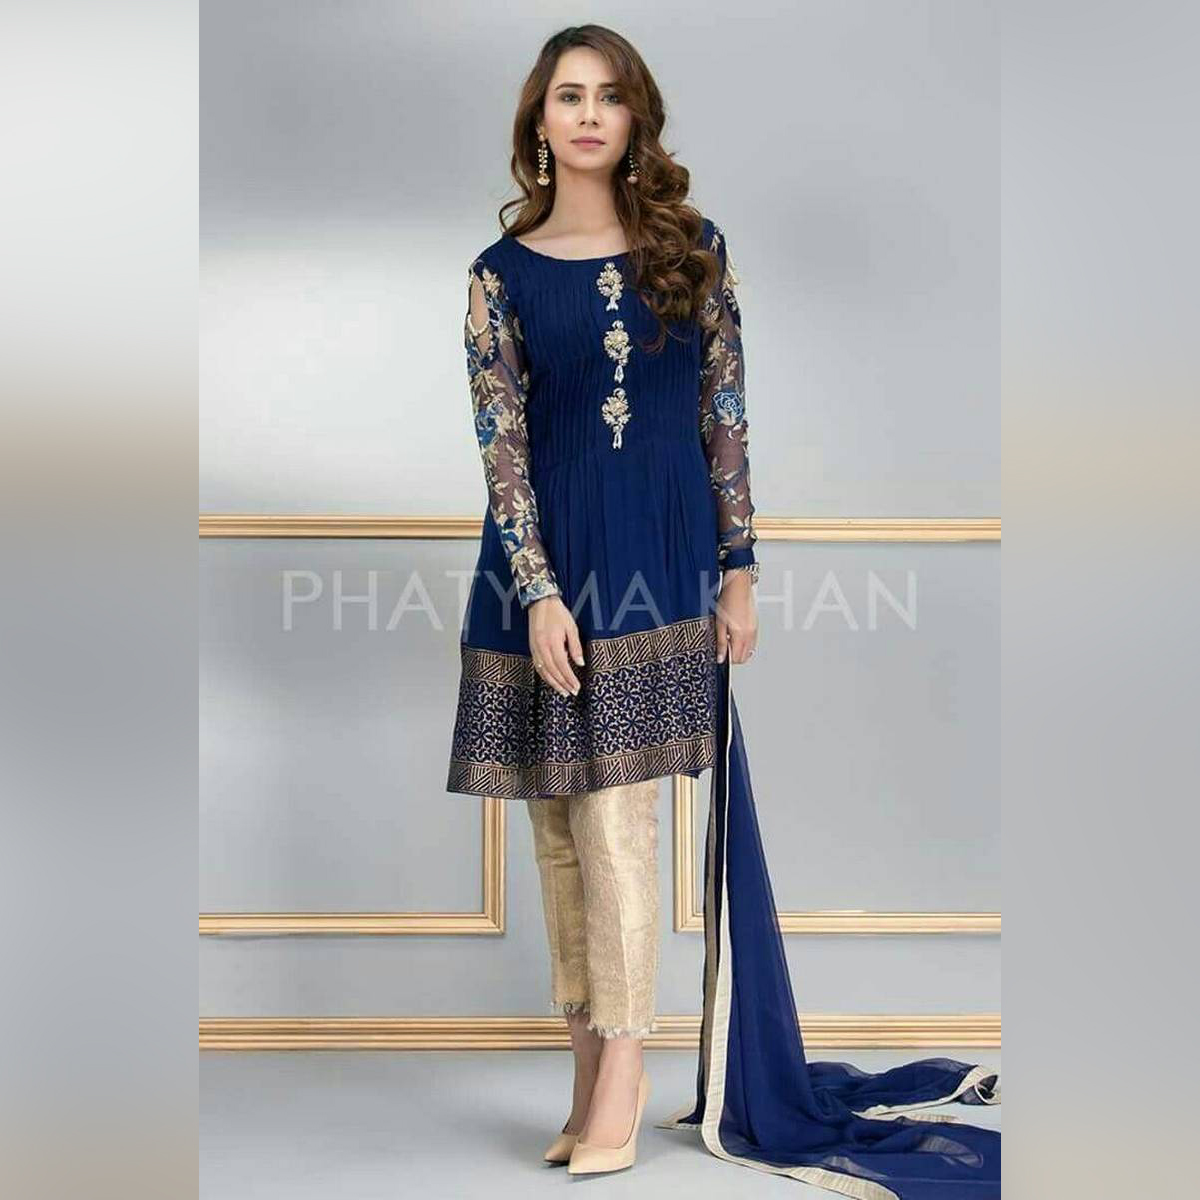 Fine Quality Chiffon with Jamawar  Trouser Front Embroidred Back Embroidered  Sleeves Embroidered Embroidered Neck Dupatta Stone work